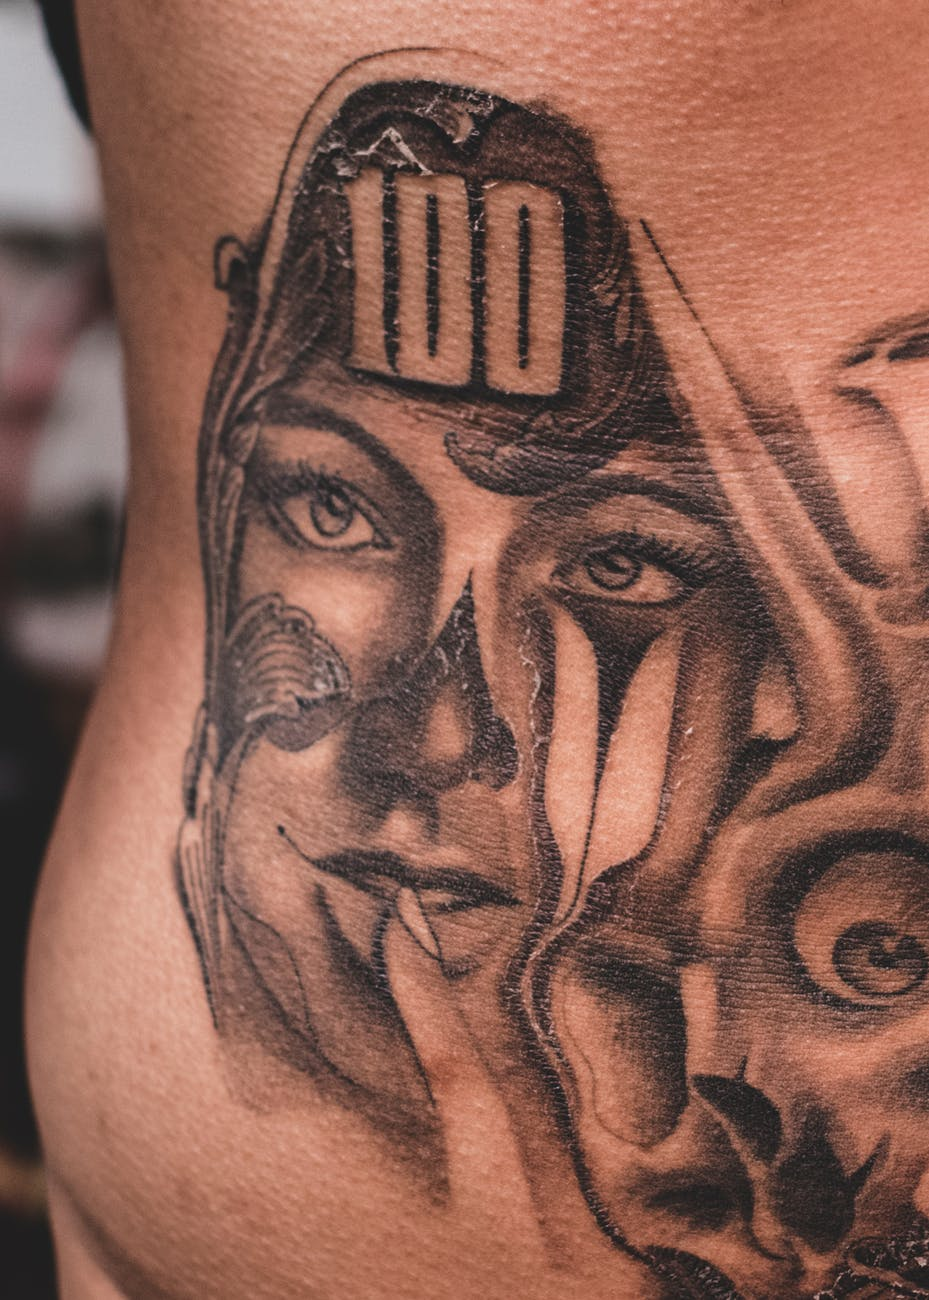 Rib Tattoos For Men: Find These Amazing Ideas That You Will Find Alluring